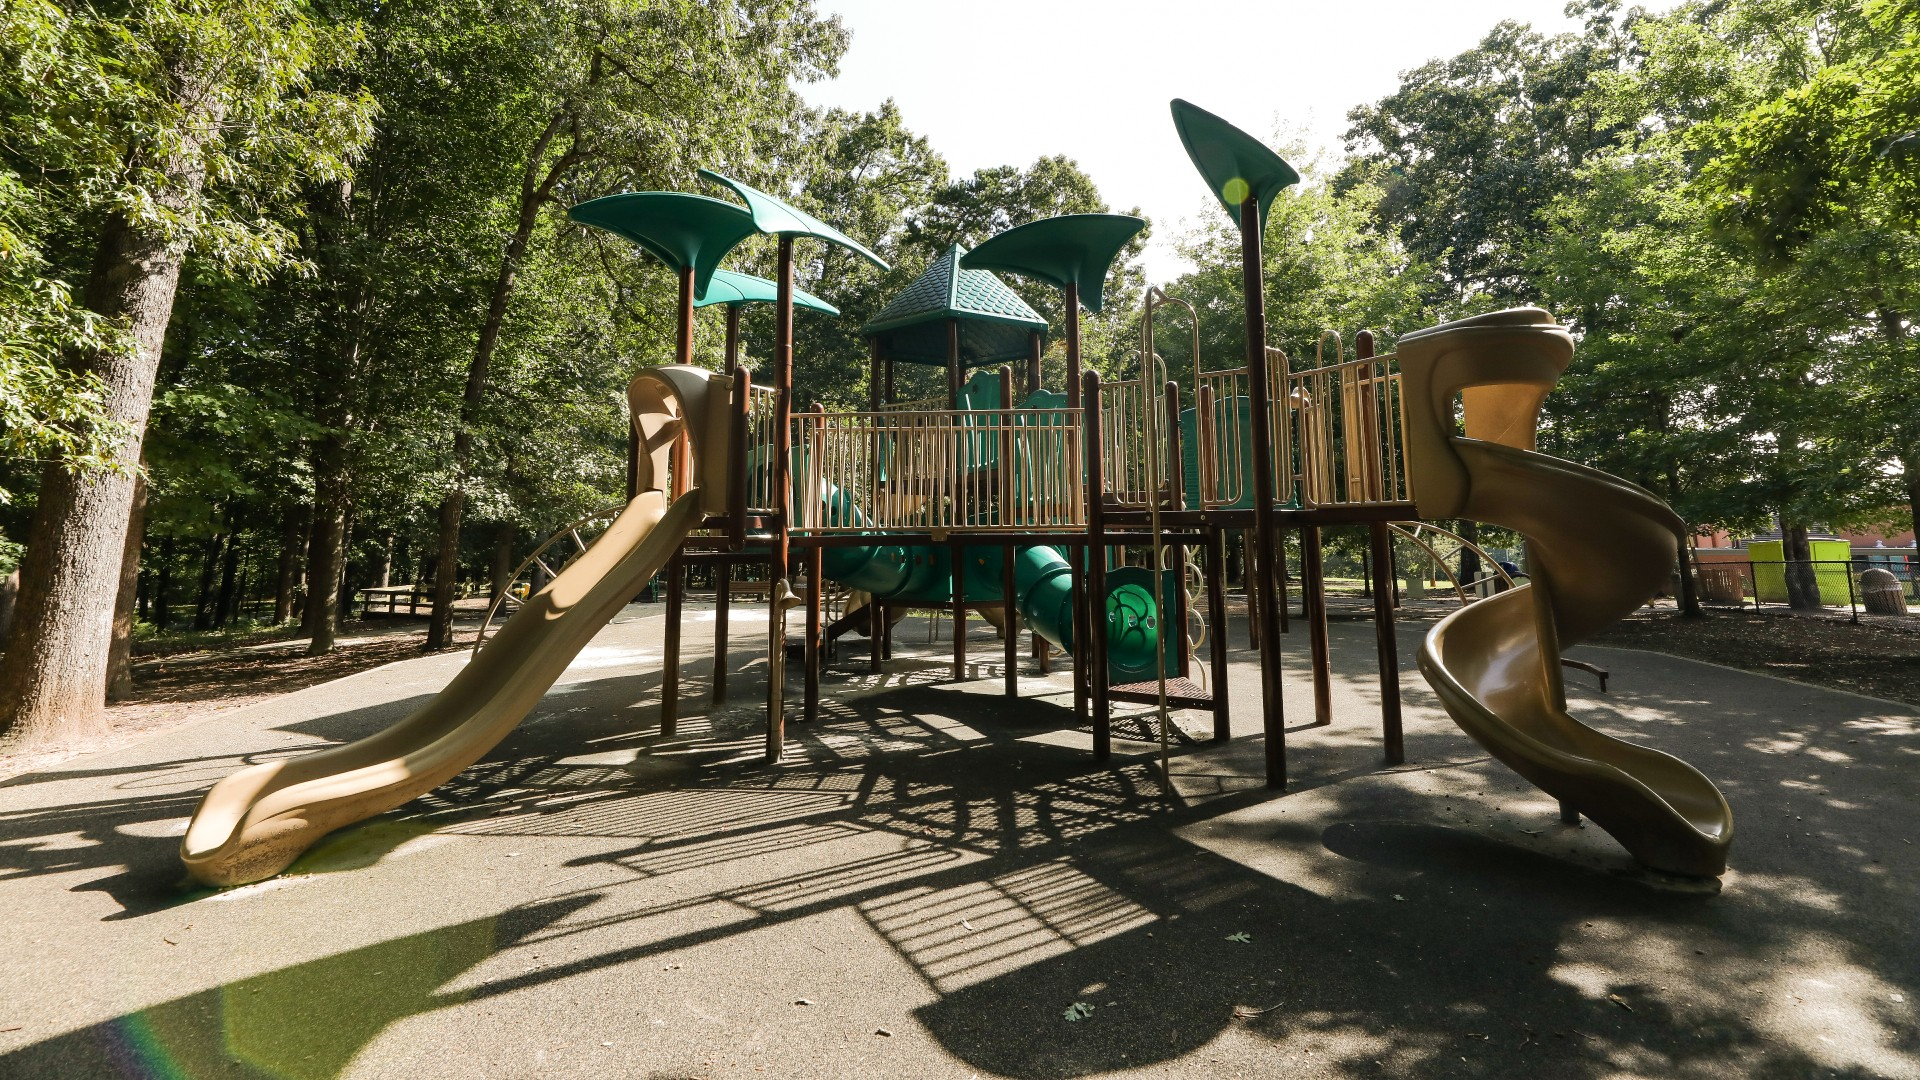 A second larger playground for older kids with more advanced equipment